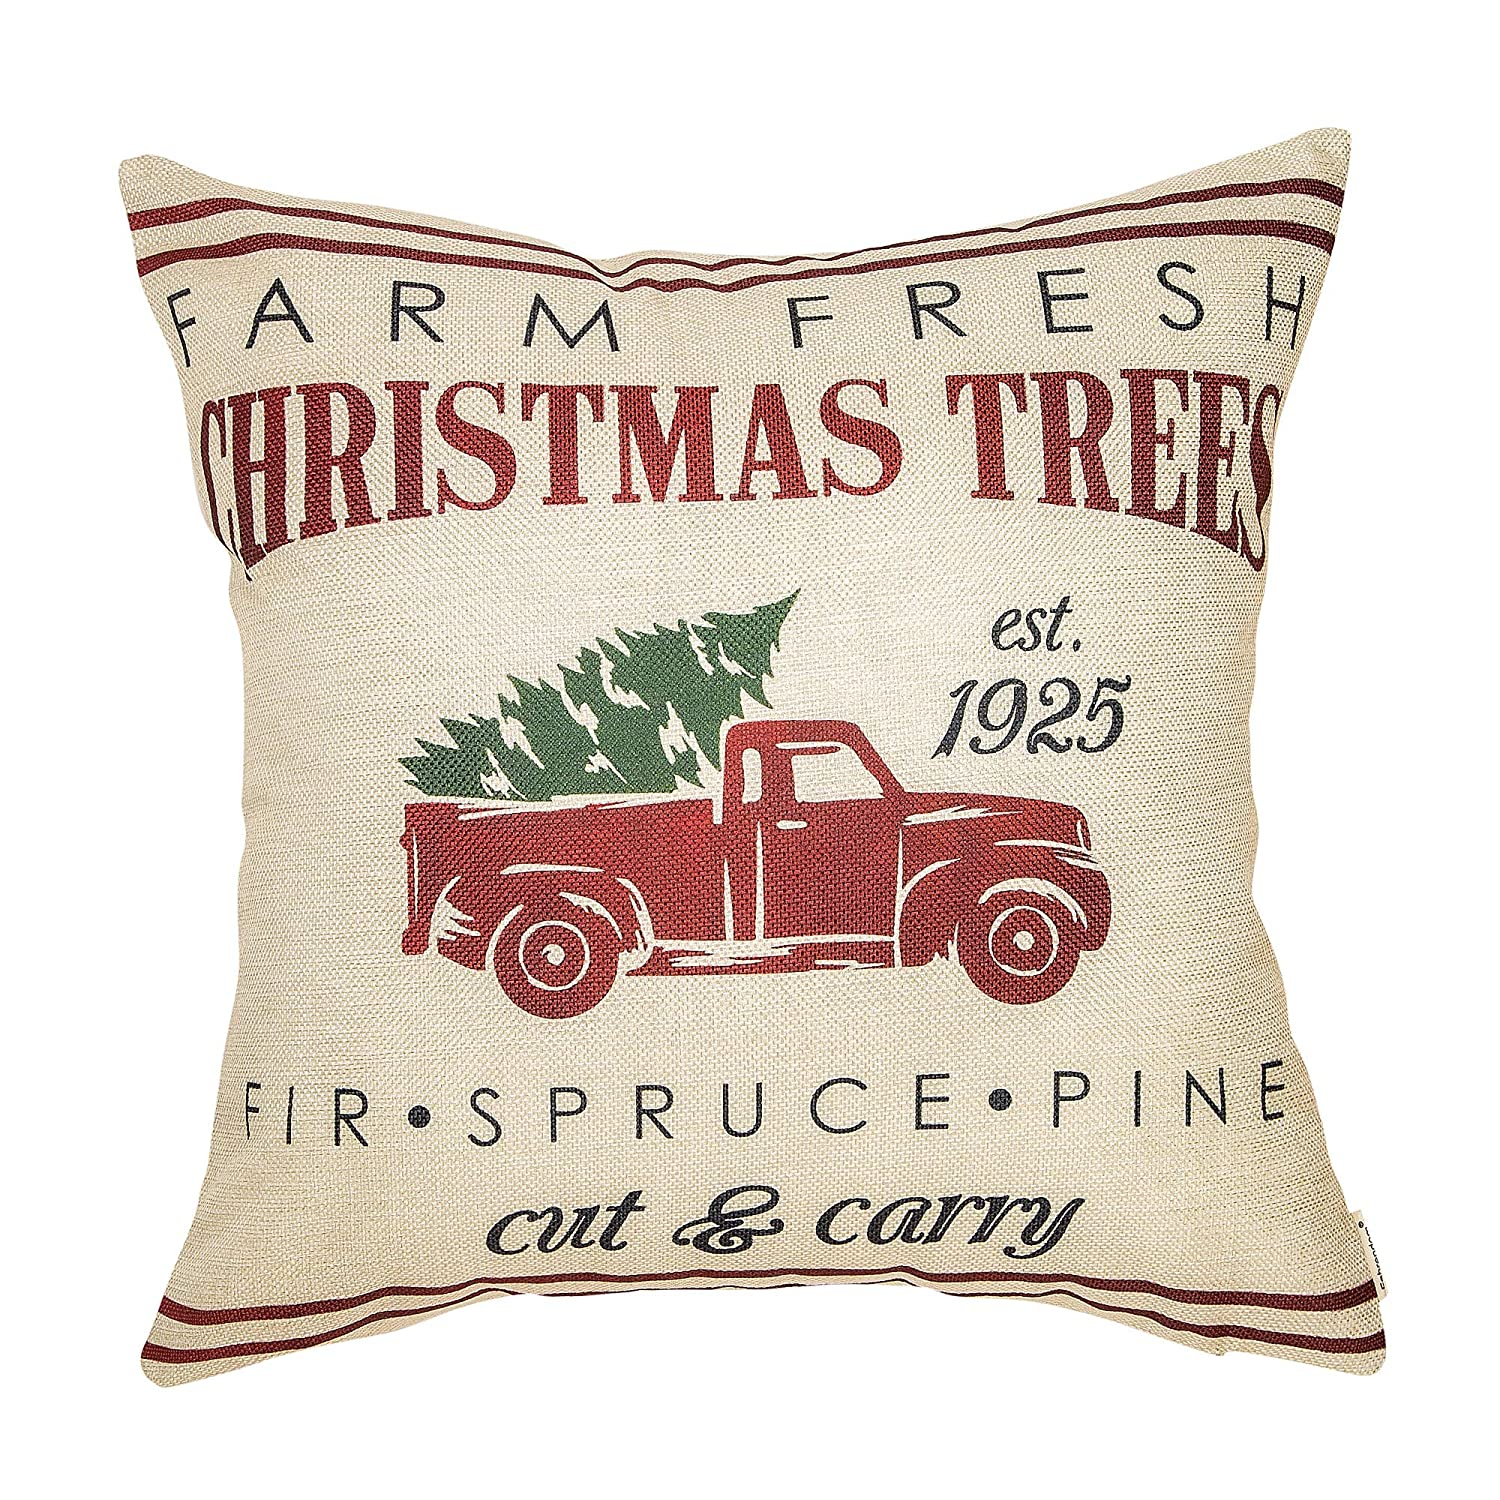 Fahrendom Rustic Farmhouse Style Farm Fresh Christmas Trees Red Vintage Truck with Trees Winter Holiday Sign Gift Cotton Linen Home Decorative Throw Pillow Case Cushion Cover with Words for Sofa Couch